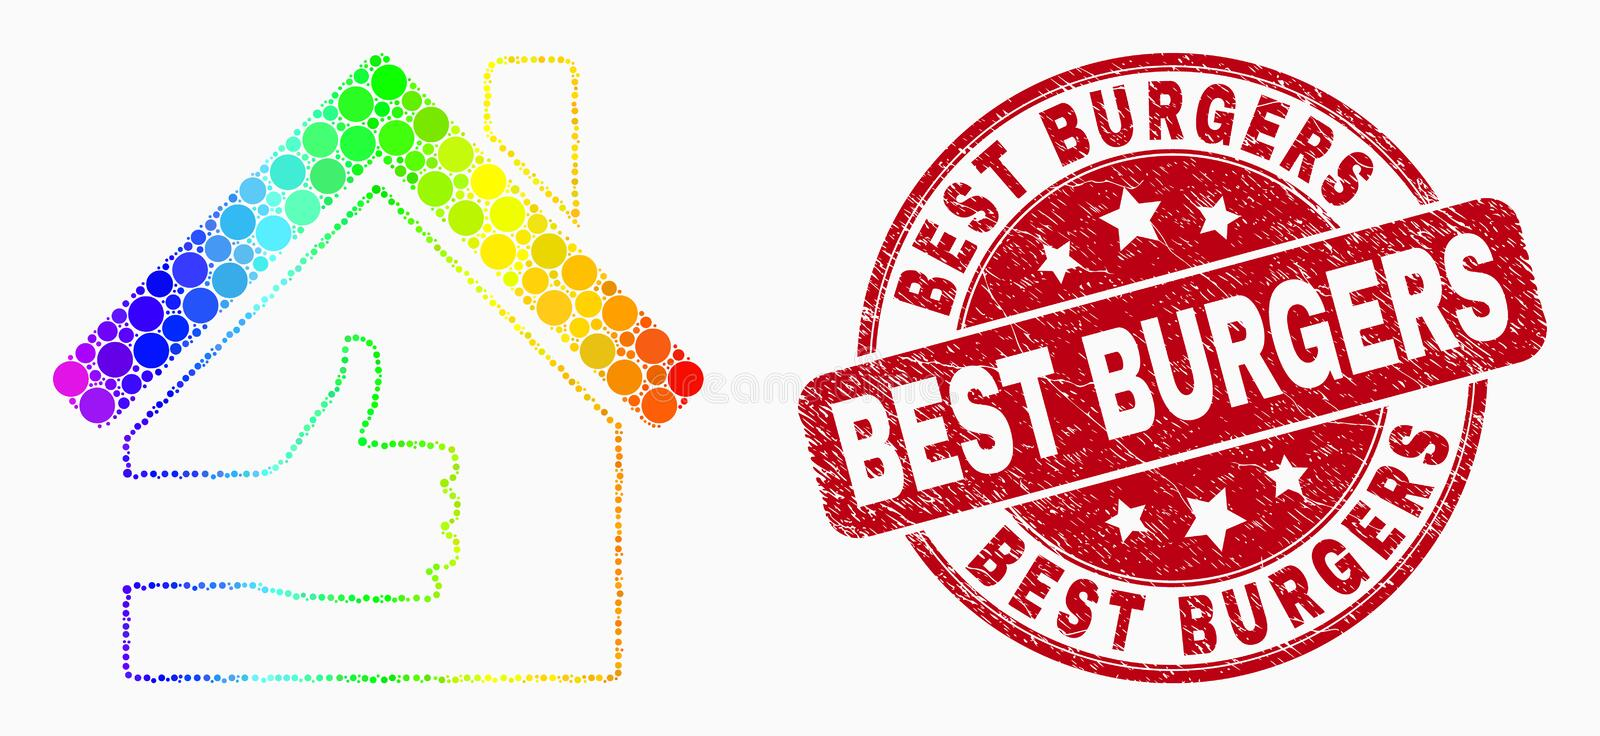 Vector Bright Dotted Best House Icon and Grunge Best Burgers Stamp Seal royalty free illustration